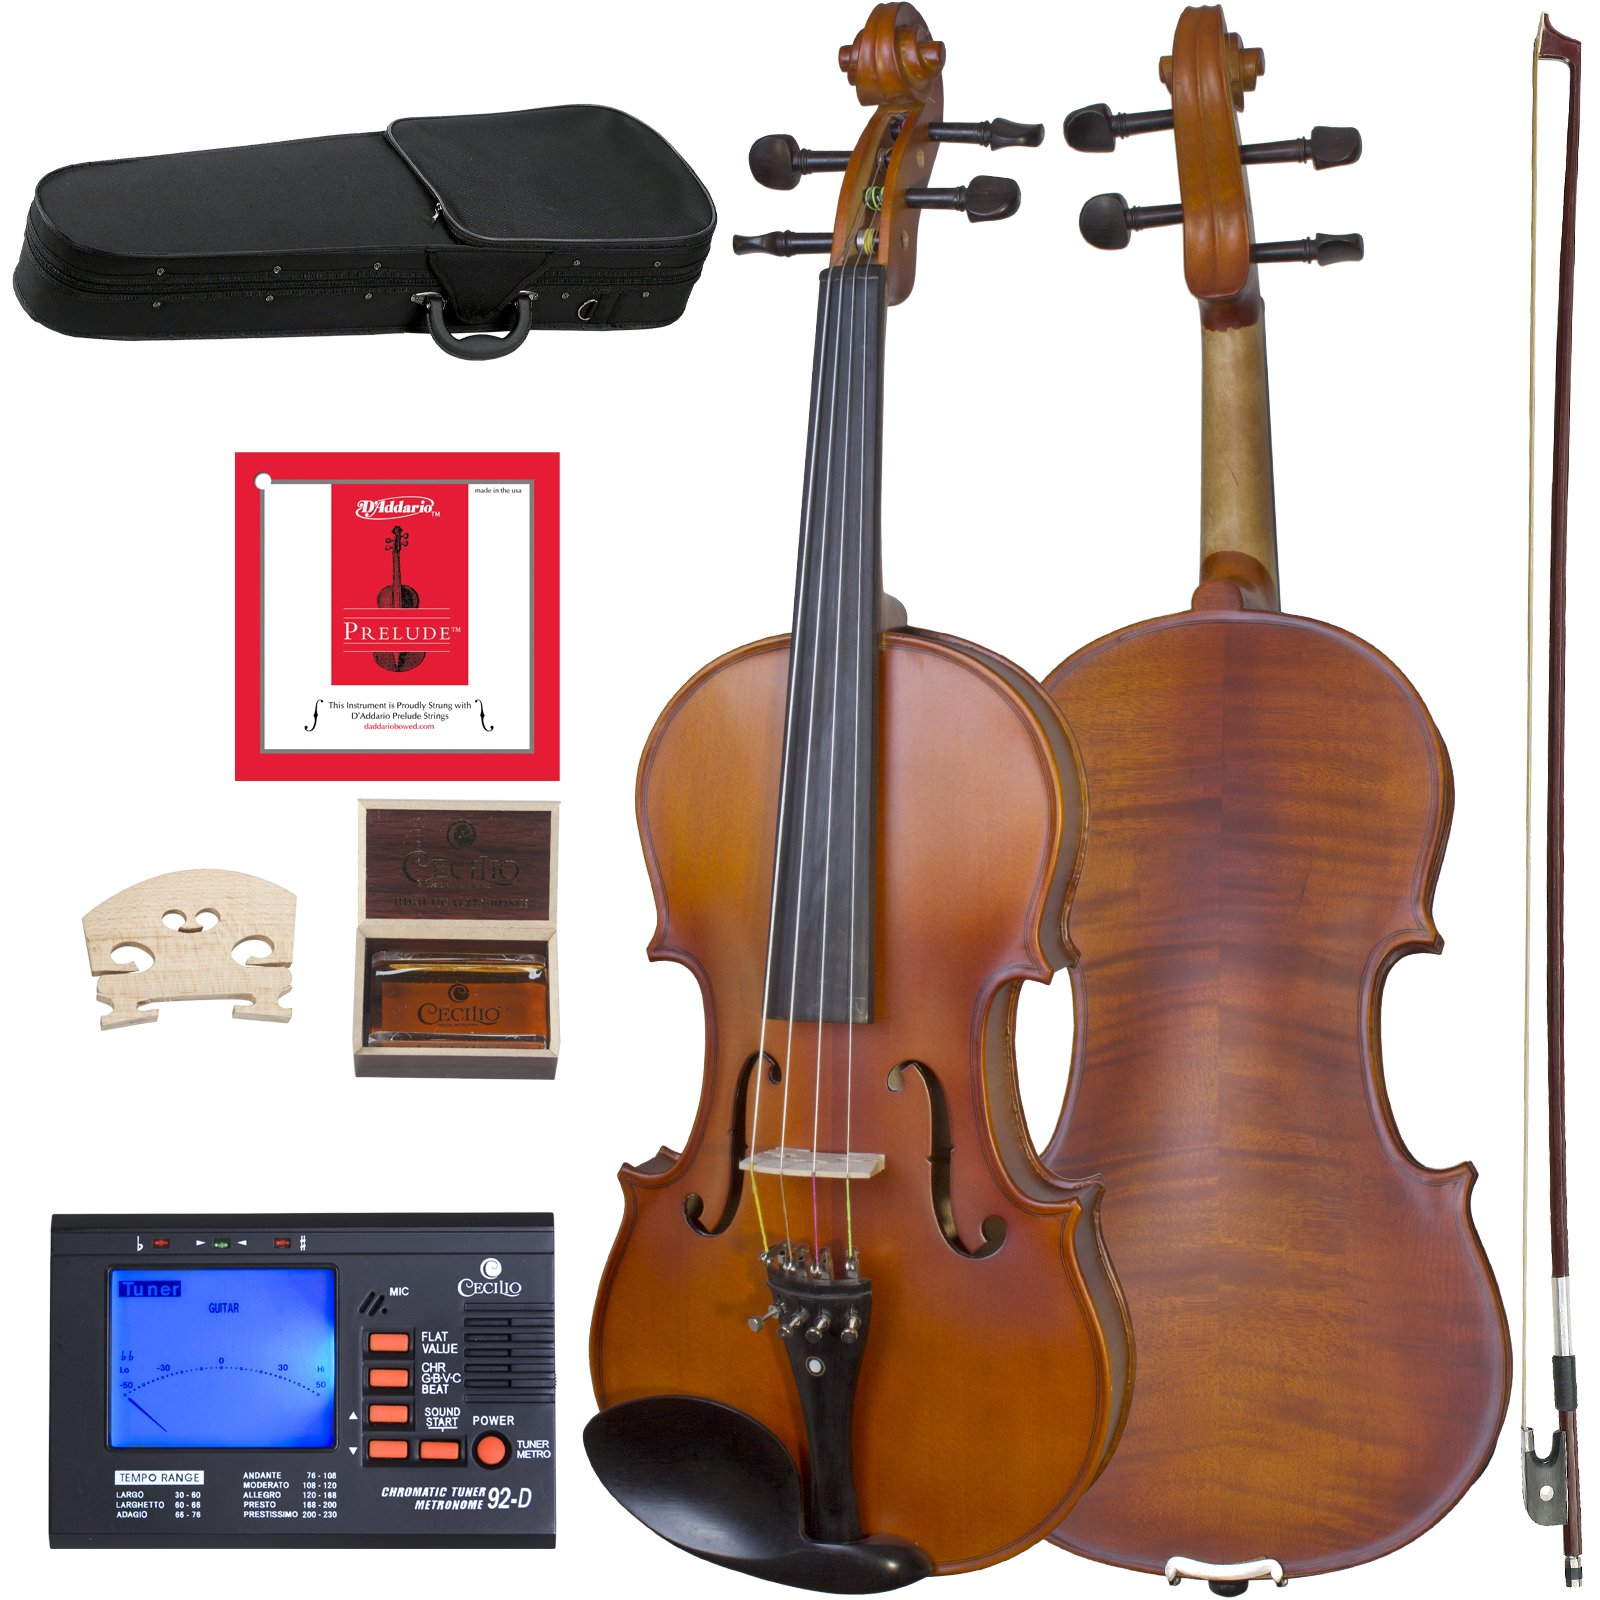 Cecilio CVA-500 Solidwood Ebony Fitted Viola with D'Addario Prelude Strings, Size 14-Inch by Cecilio